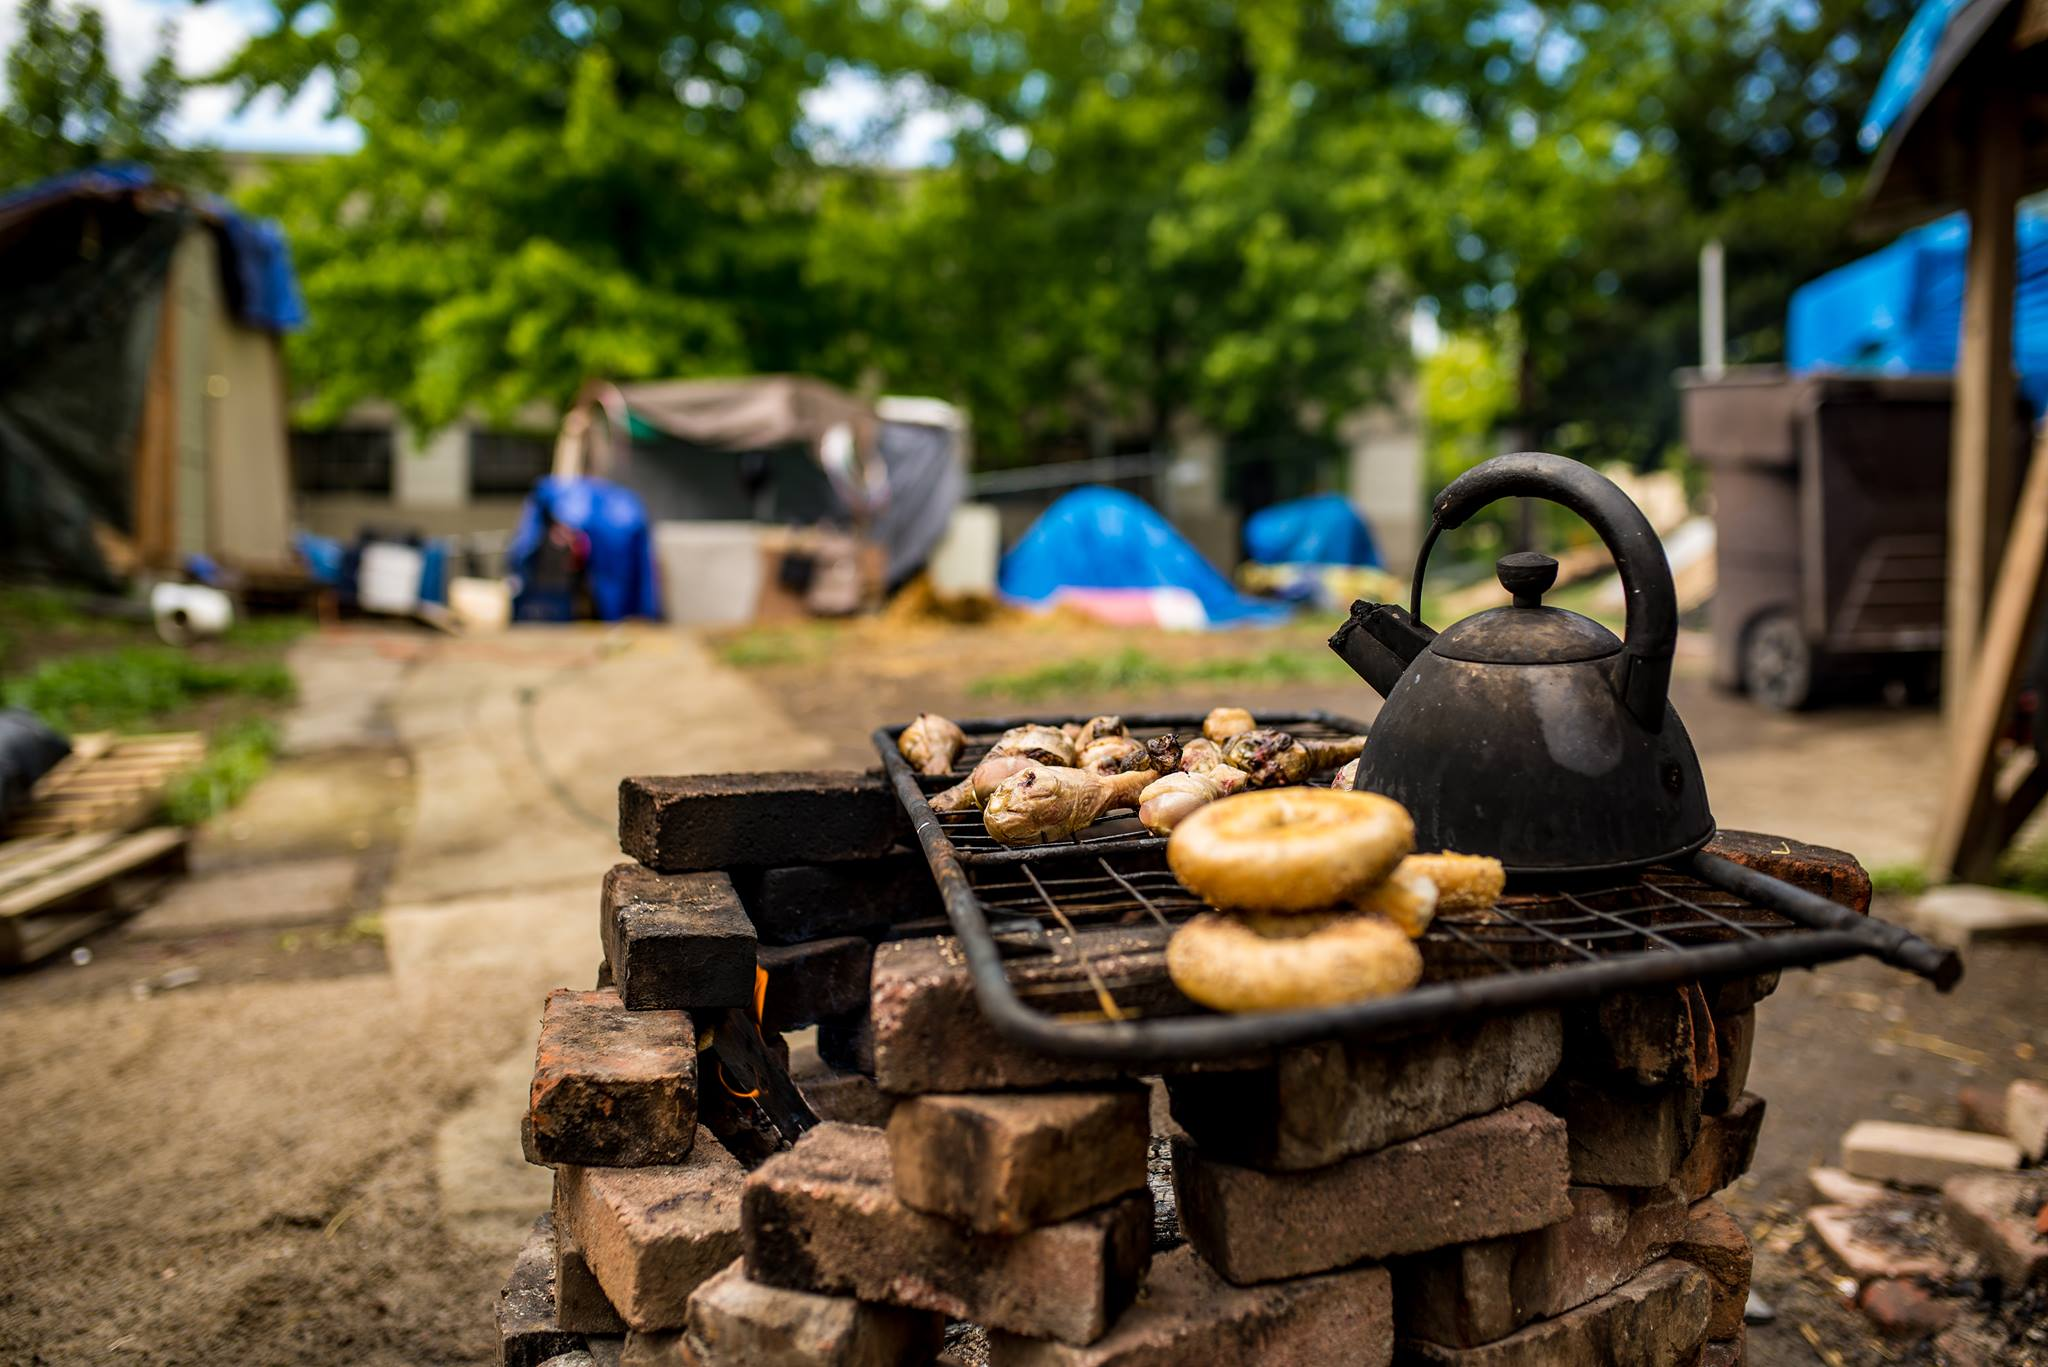 Dinner at houseless camp, Forgotten Realms, in June, 2016. Portland, Oregon. Photo courtesy of The Miller Scholarship Foundation.